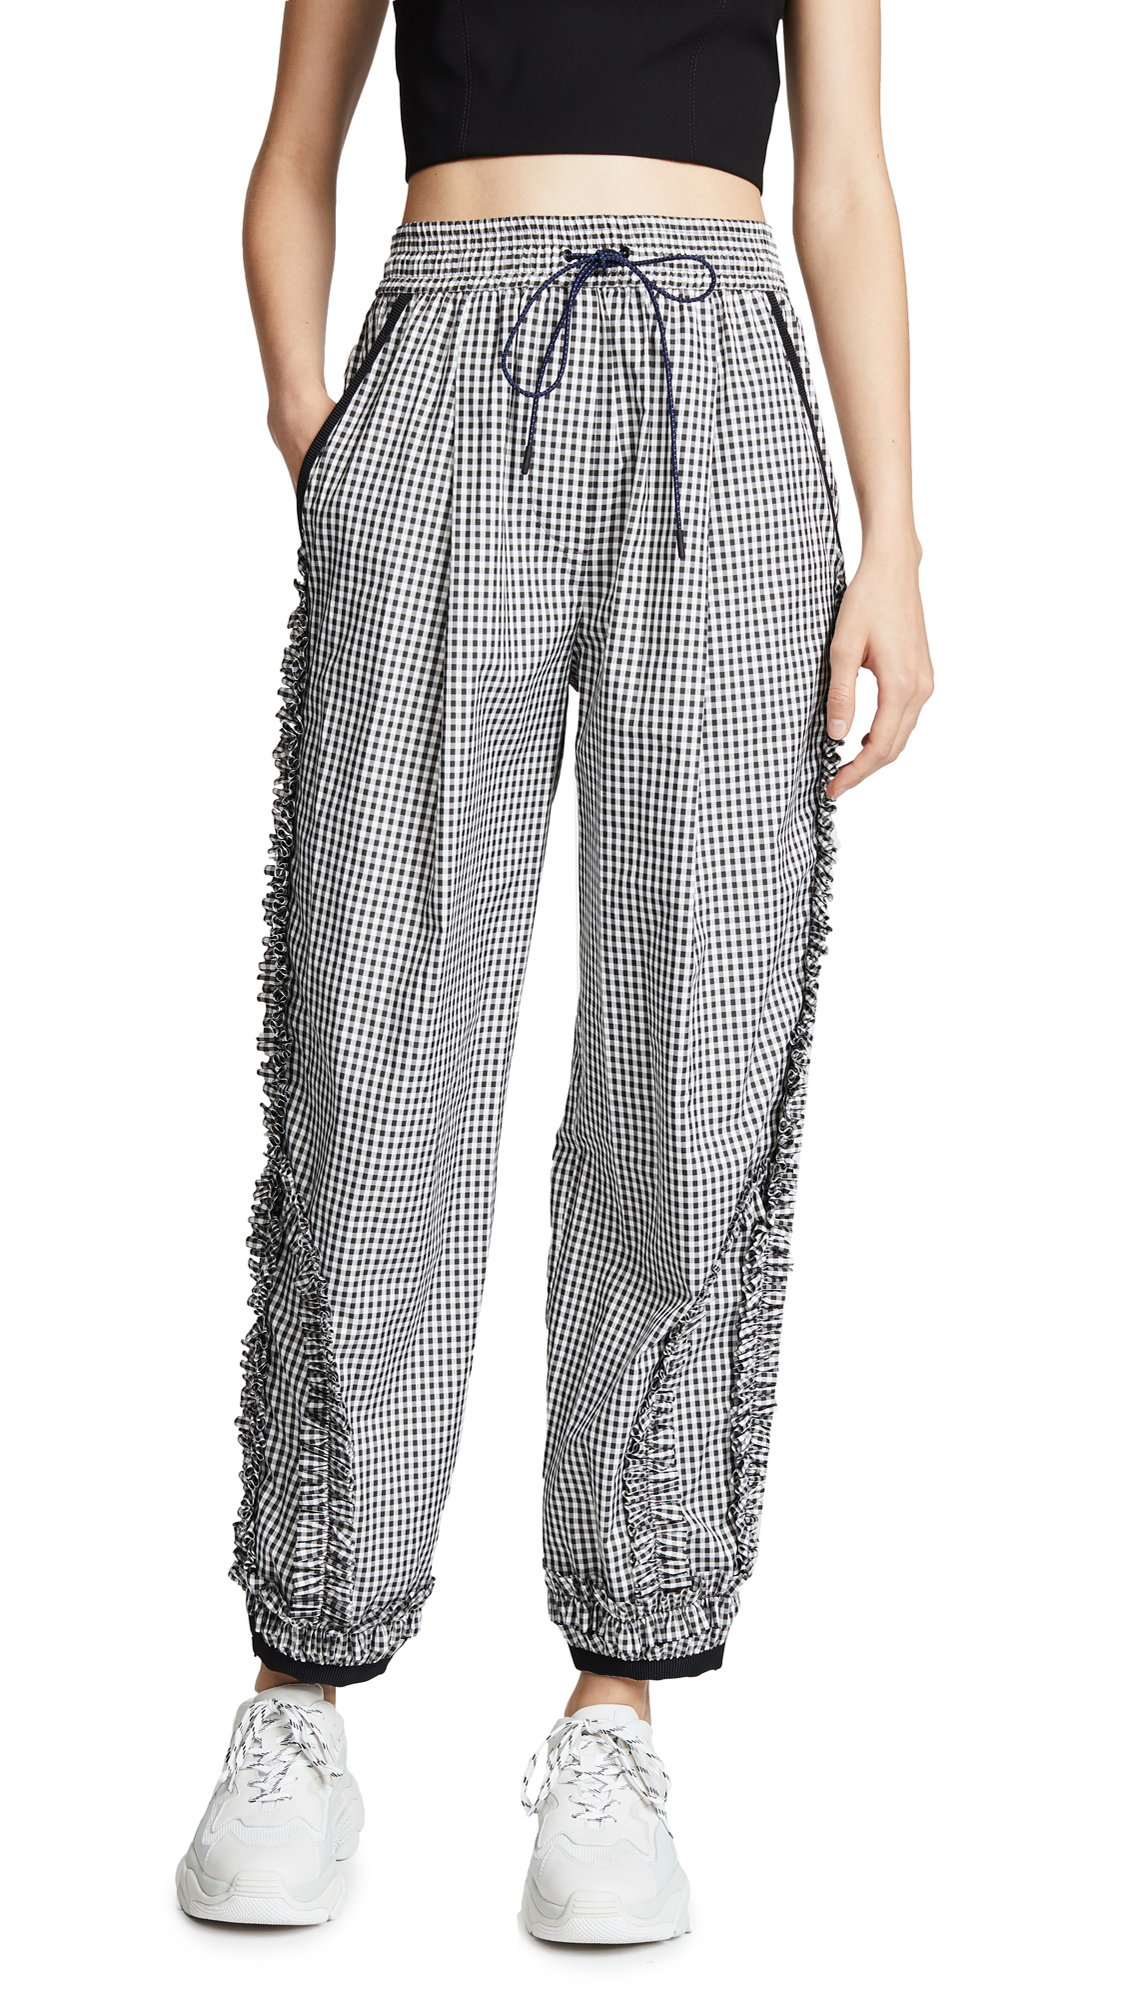 3.1 Phillip Lim Gingham Track Pants